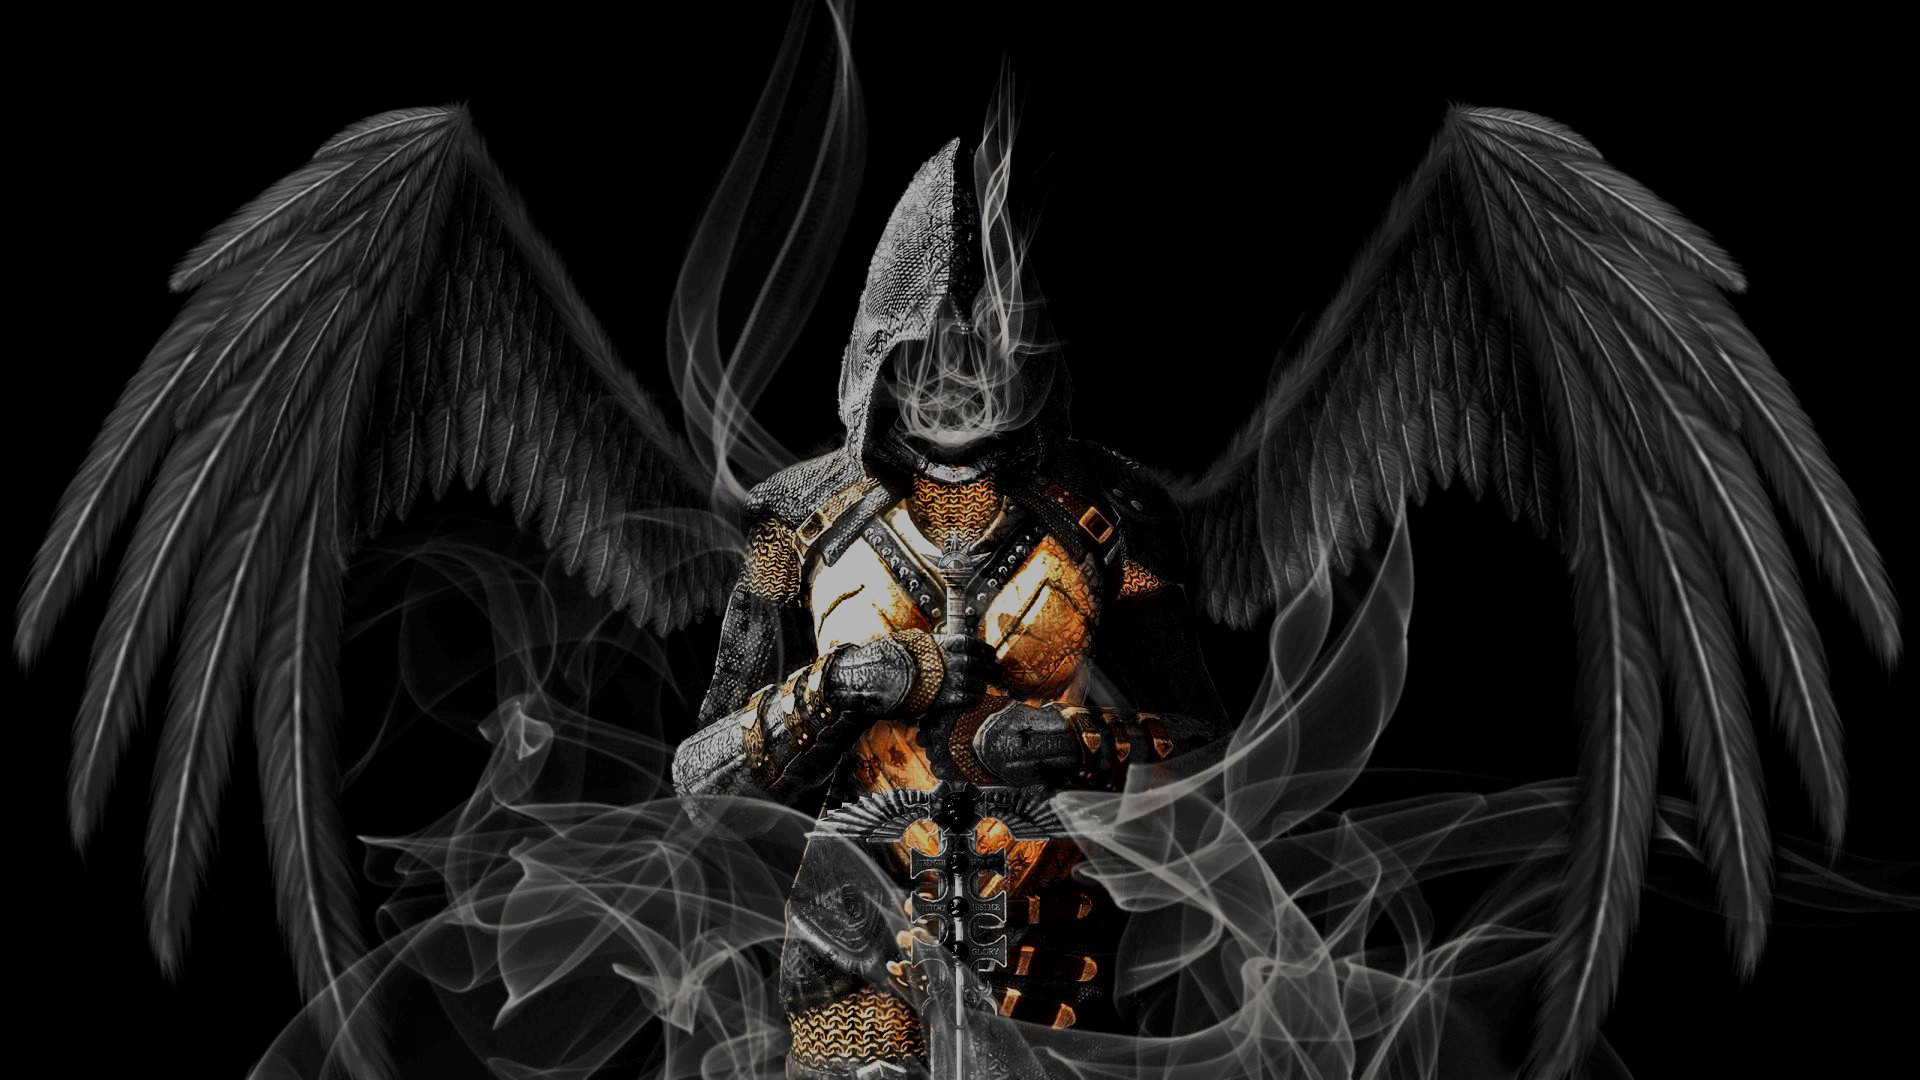 1 Angel Warrior HD Wallpapers | Backgrounds - Wallpaper Abyss